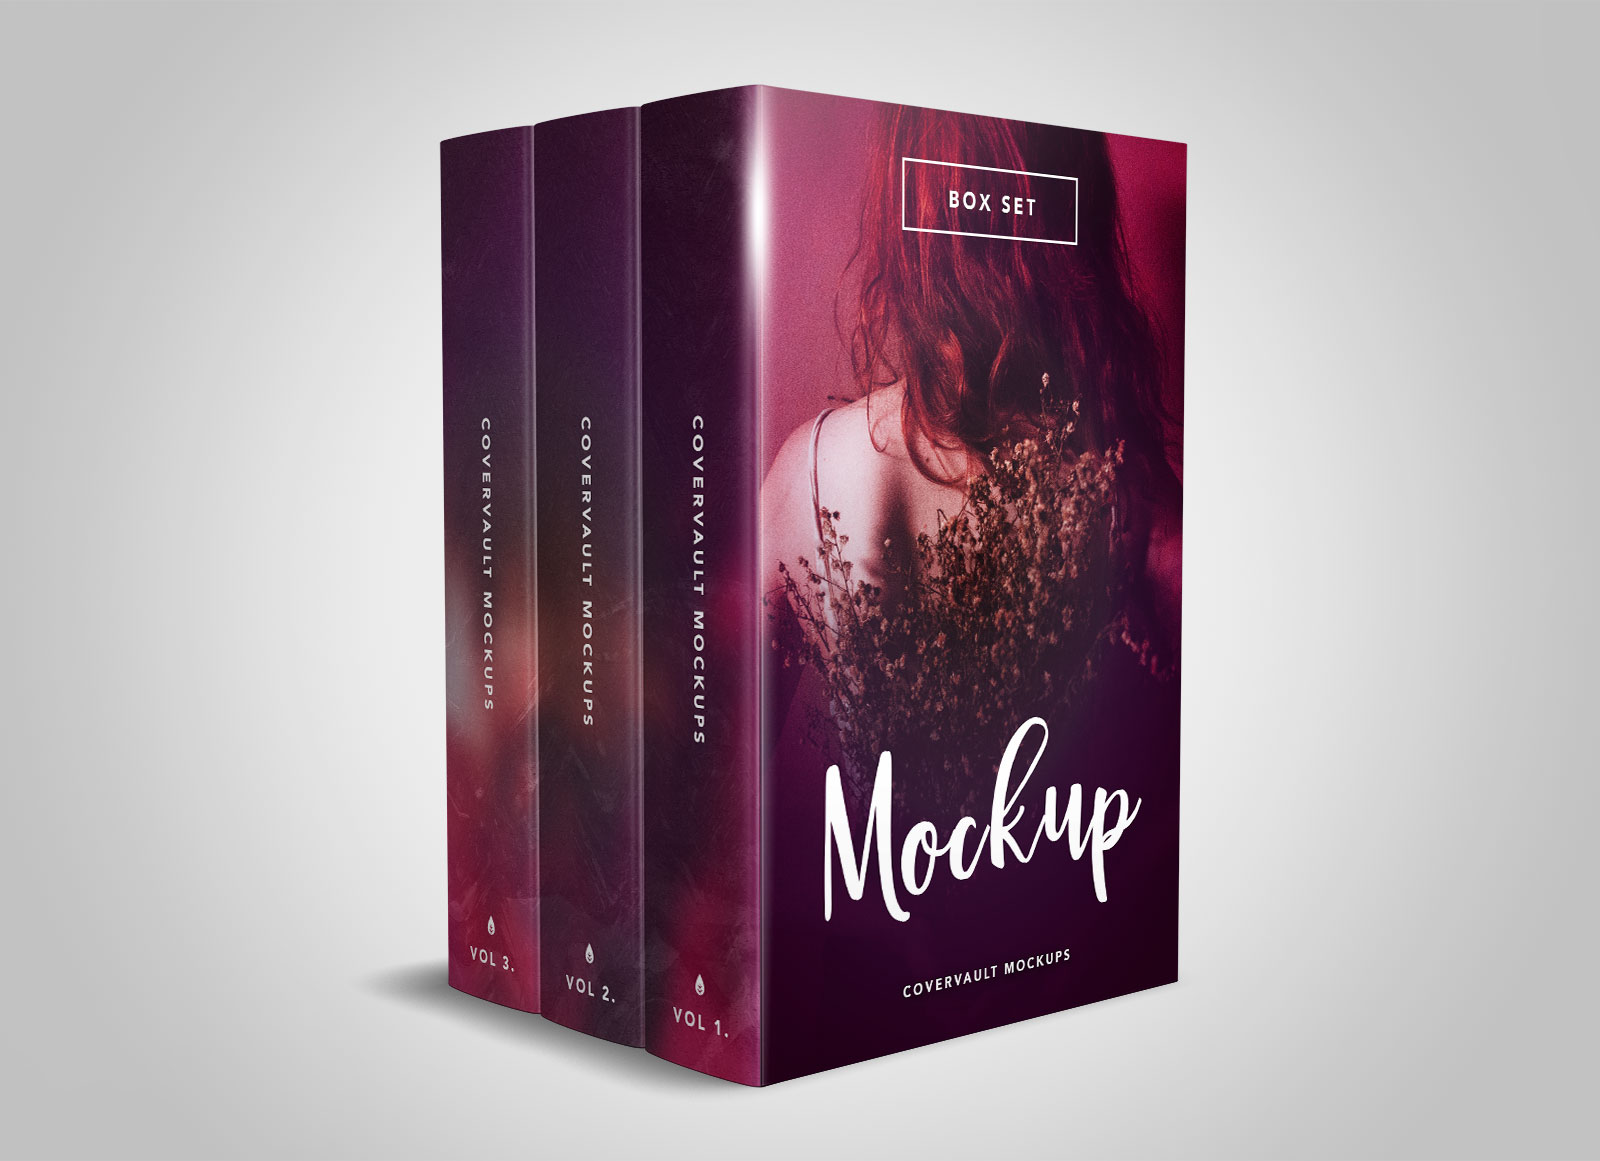 Free-3-Books-Set-PSD-Mockup-Template-2